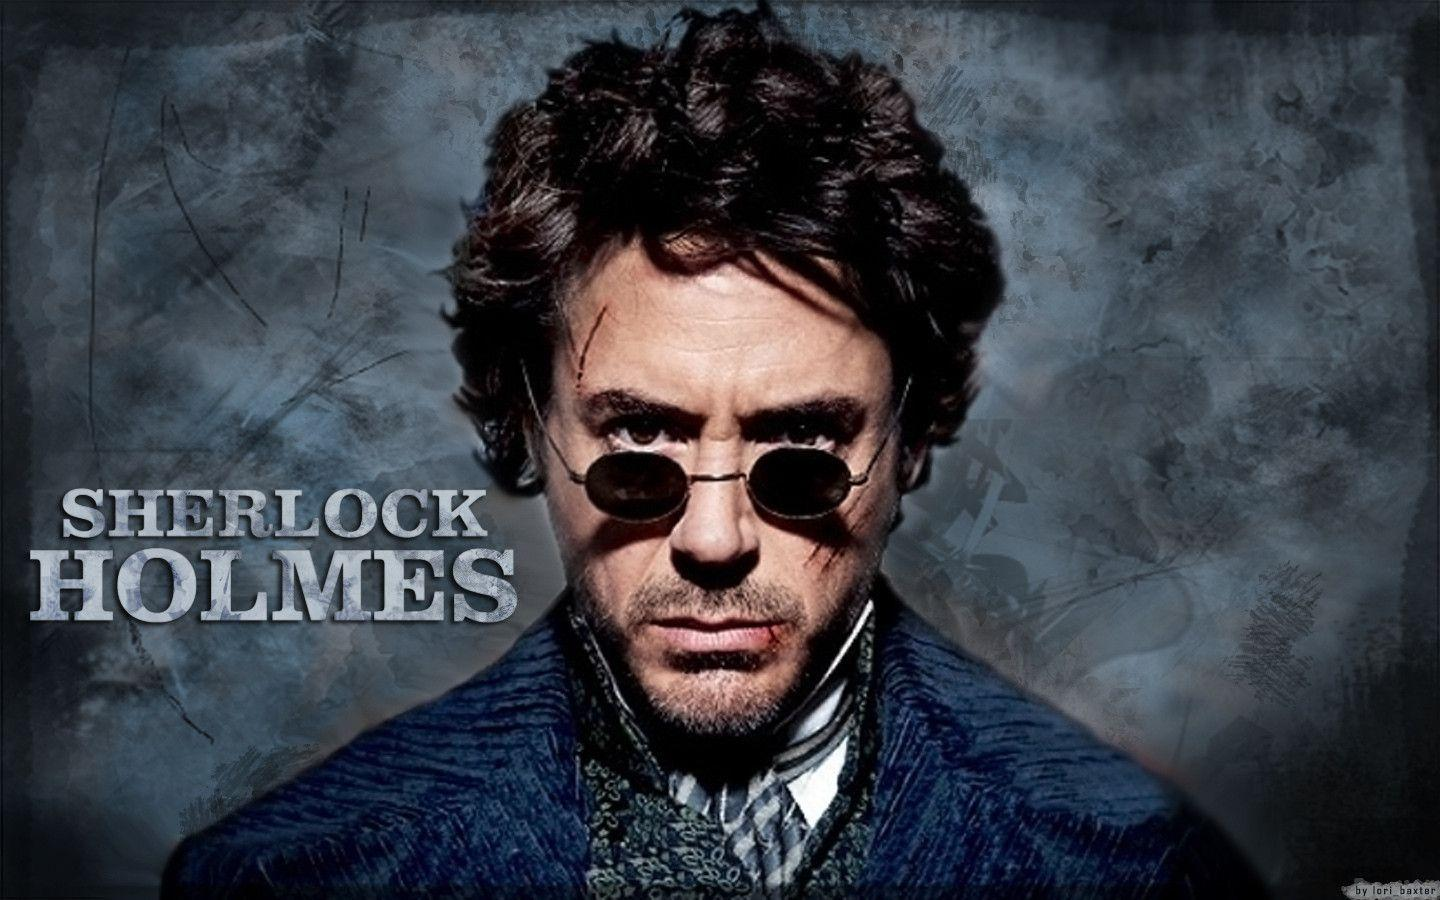 Sherlock Holmes 3 Release Date, Trailer, Cast, Plot, Villains and More Updates for the Threequel